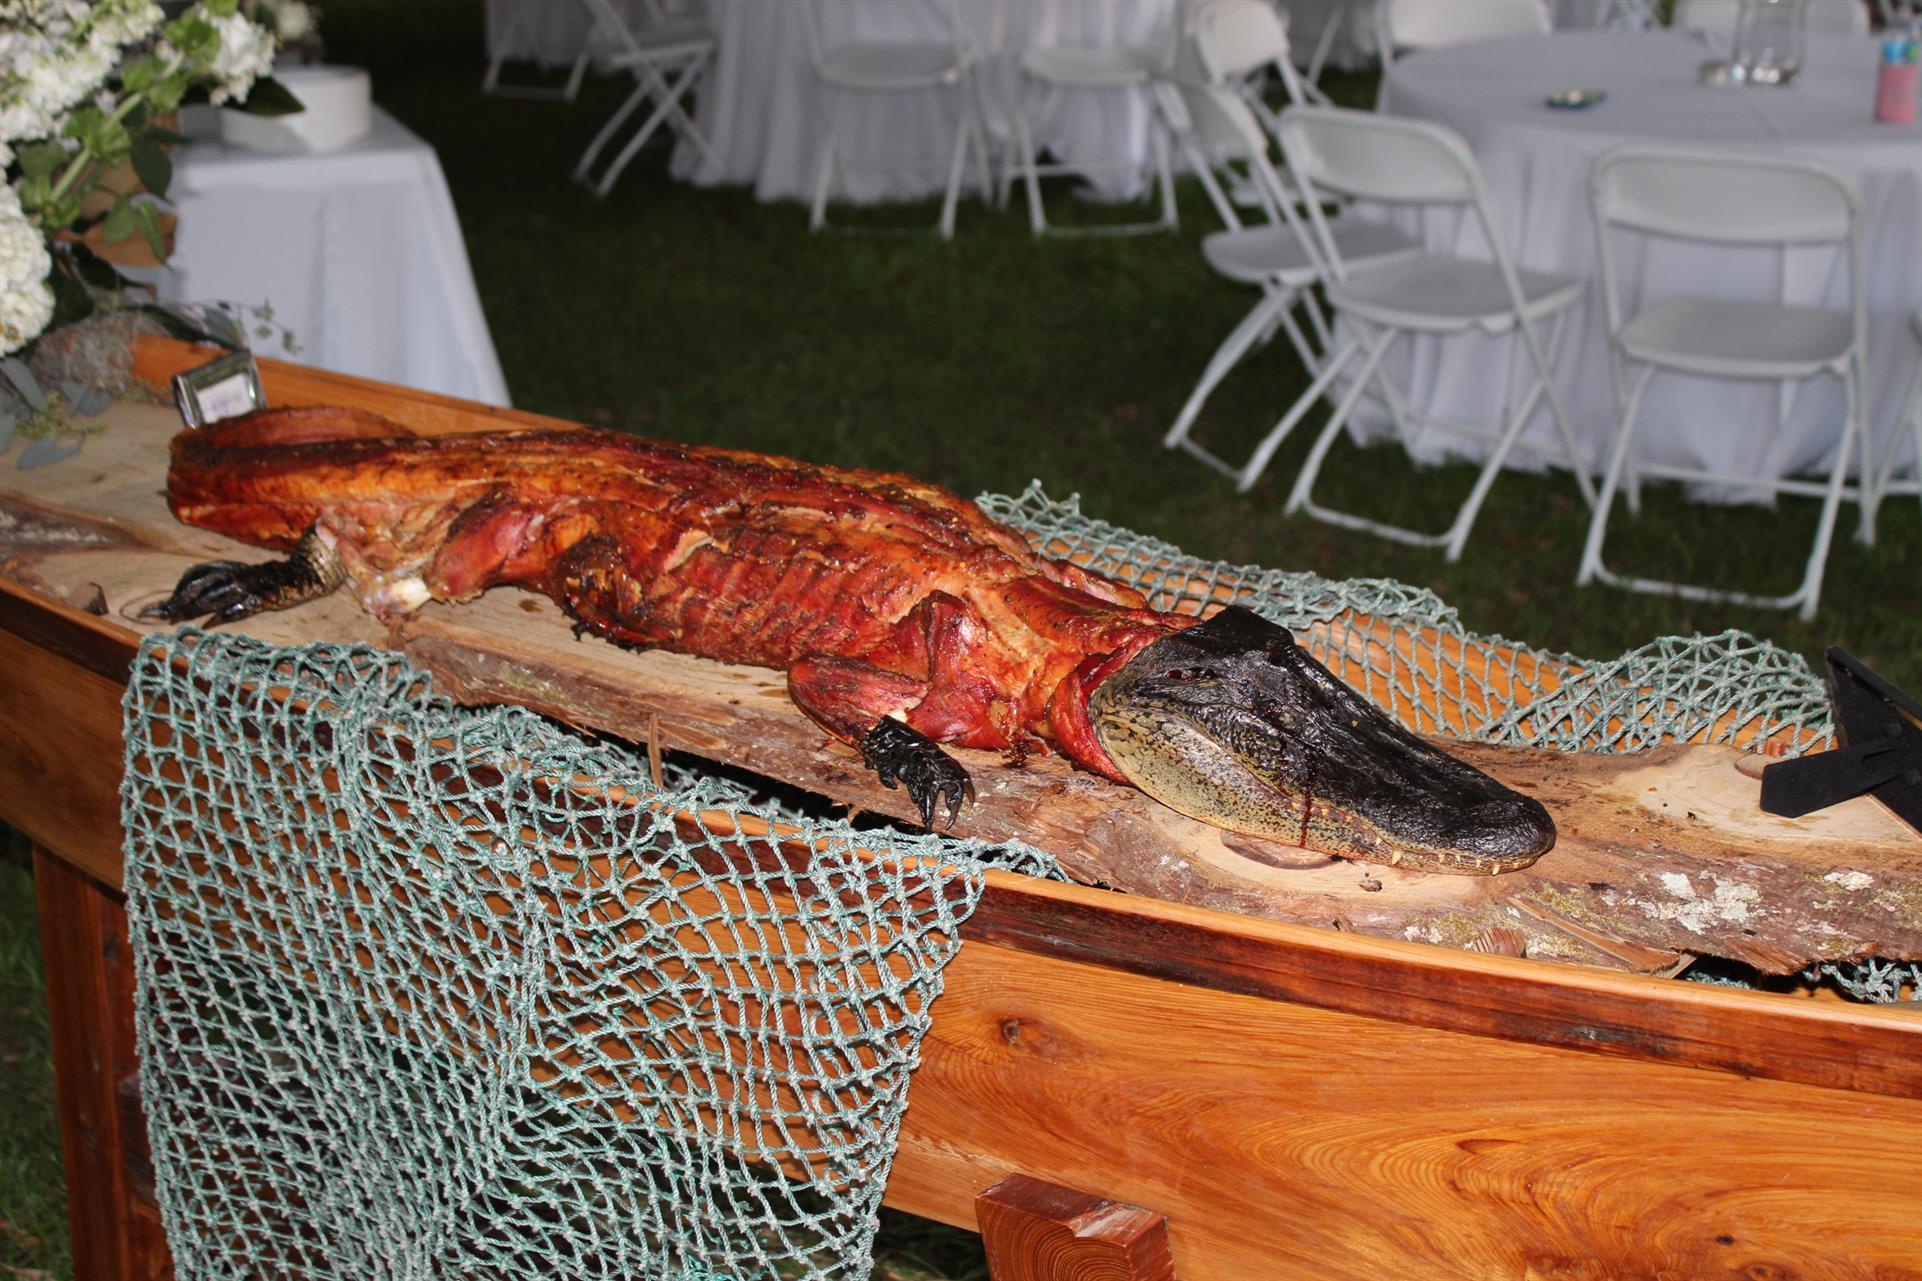 cooked alligator laying on a wooden table